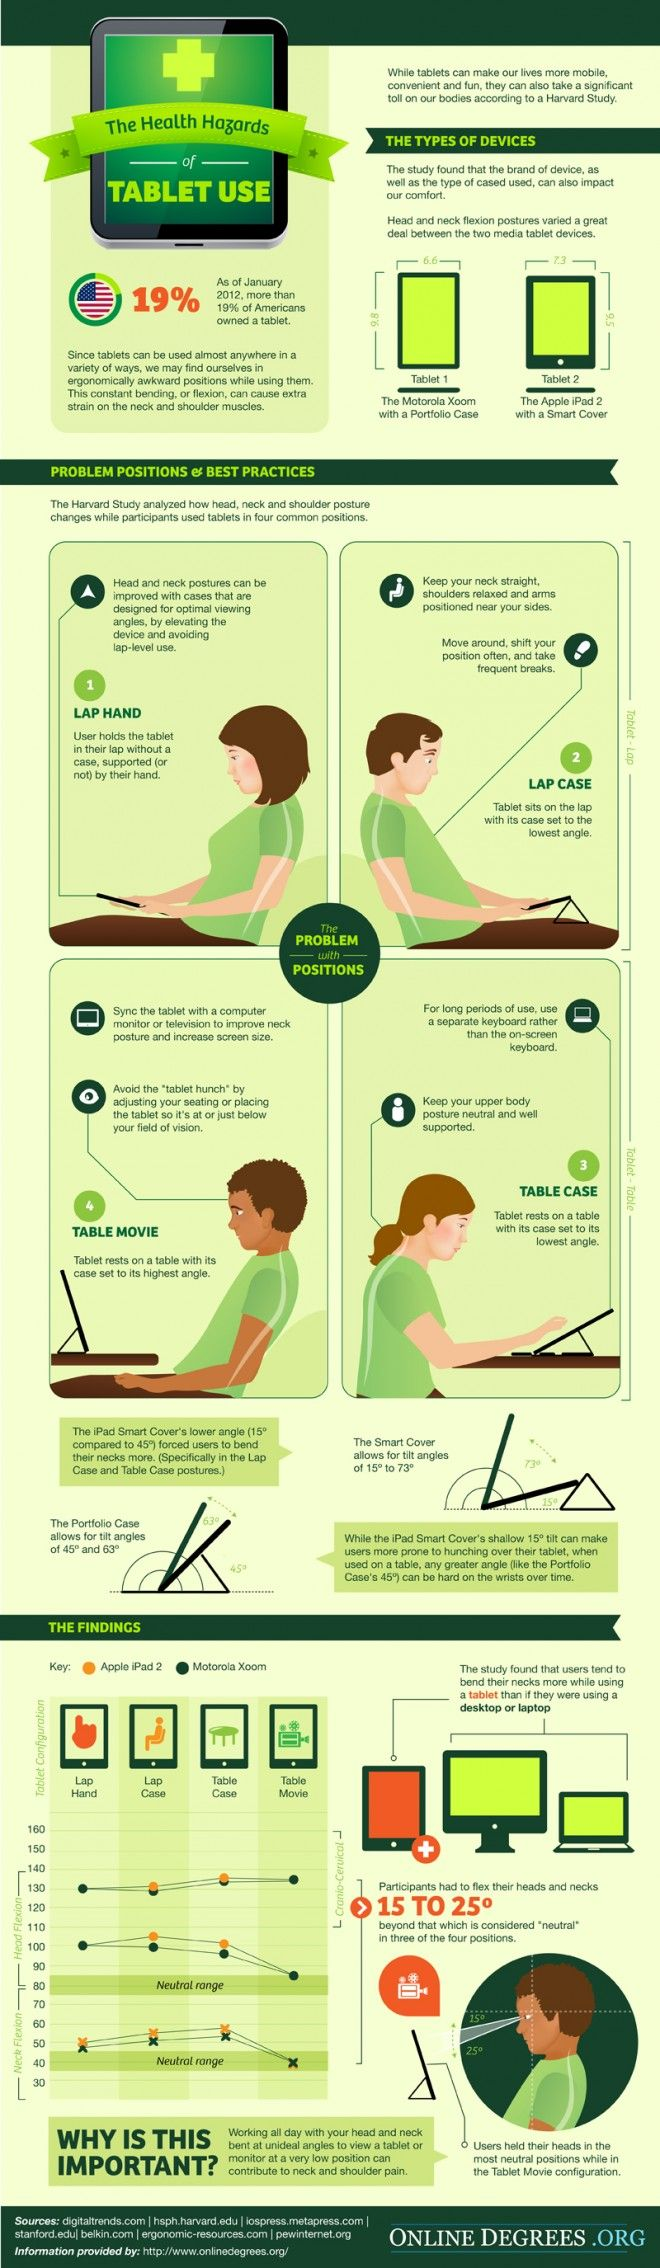 With tablets now being sold and used by children as young as 3 years old (and those younger than that who master an iPad by 1), we must now teach good posture to our children from the beginning.  Check out this infographic on The Health Hazards of Tablet Use.  #Posture #PostureFit #Postursizer